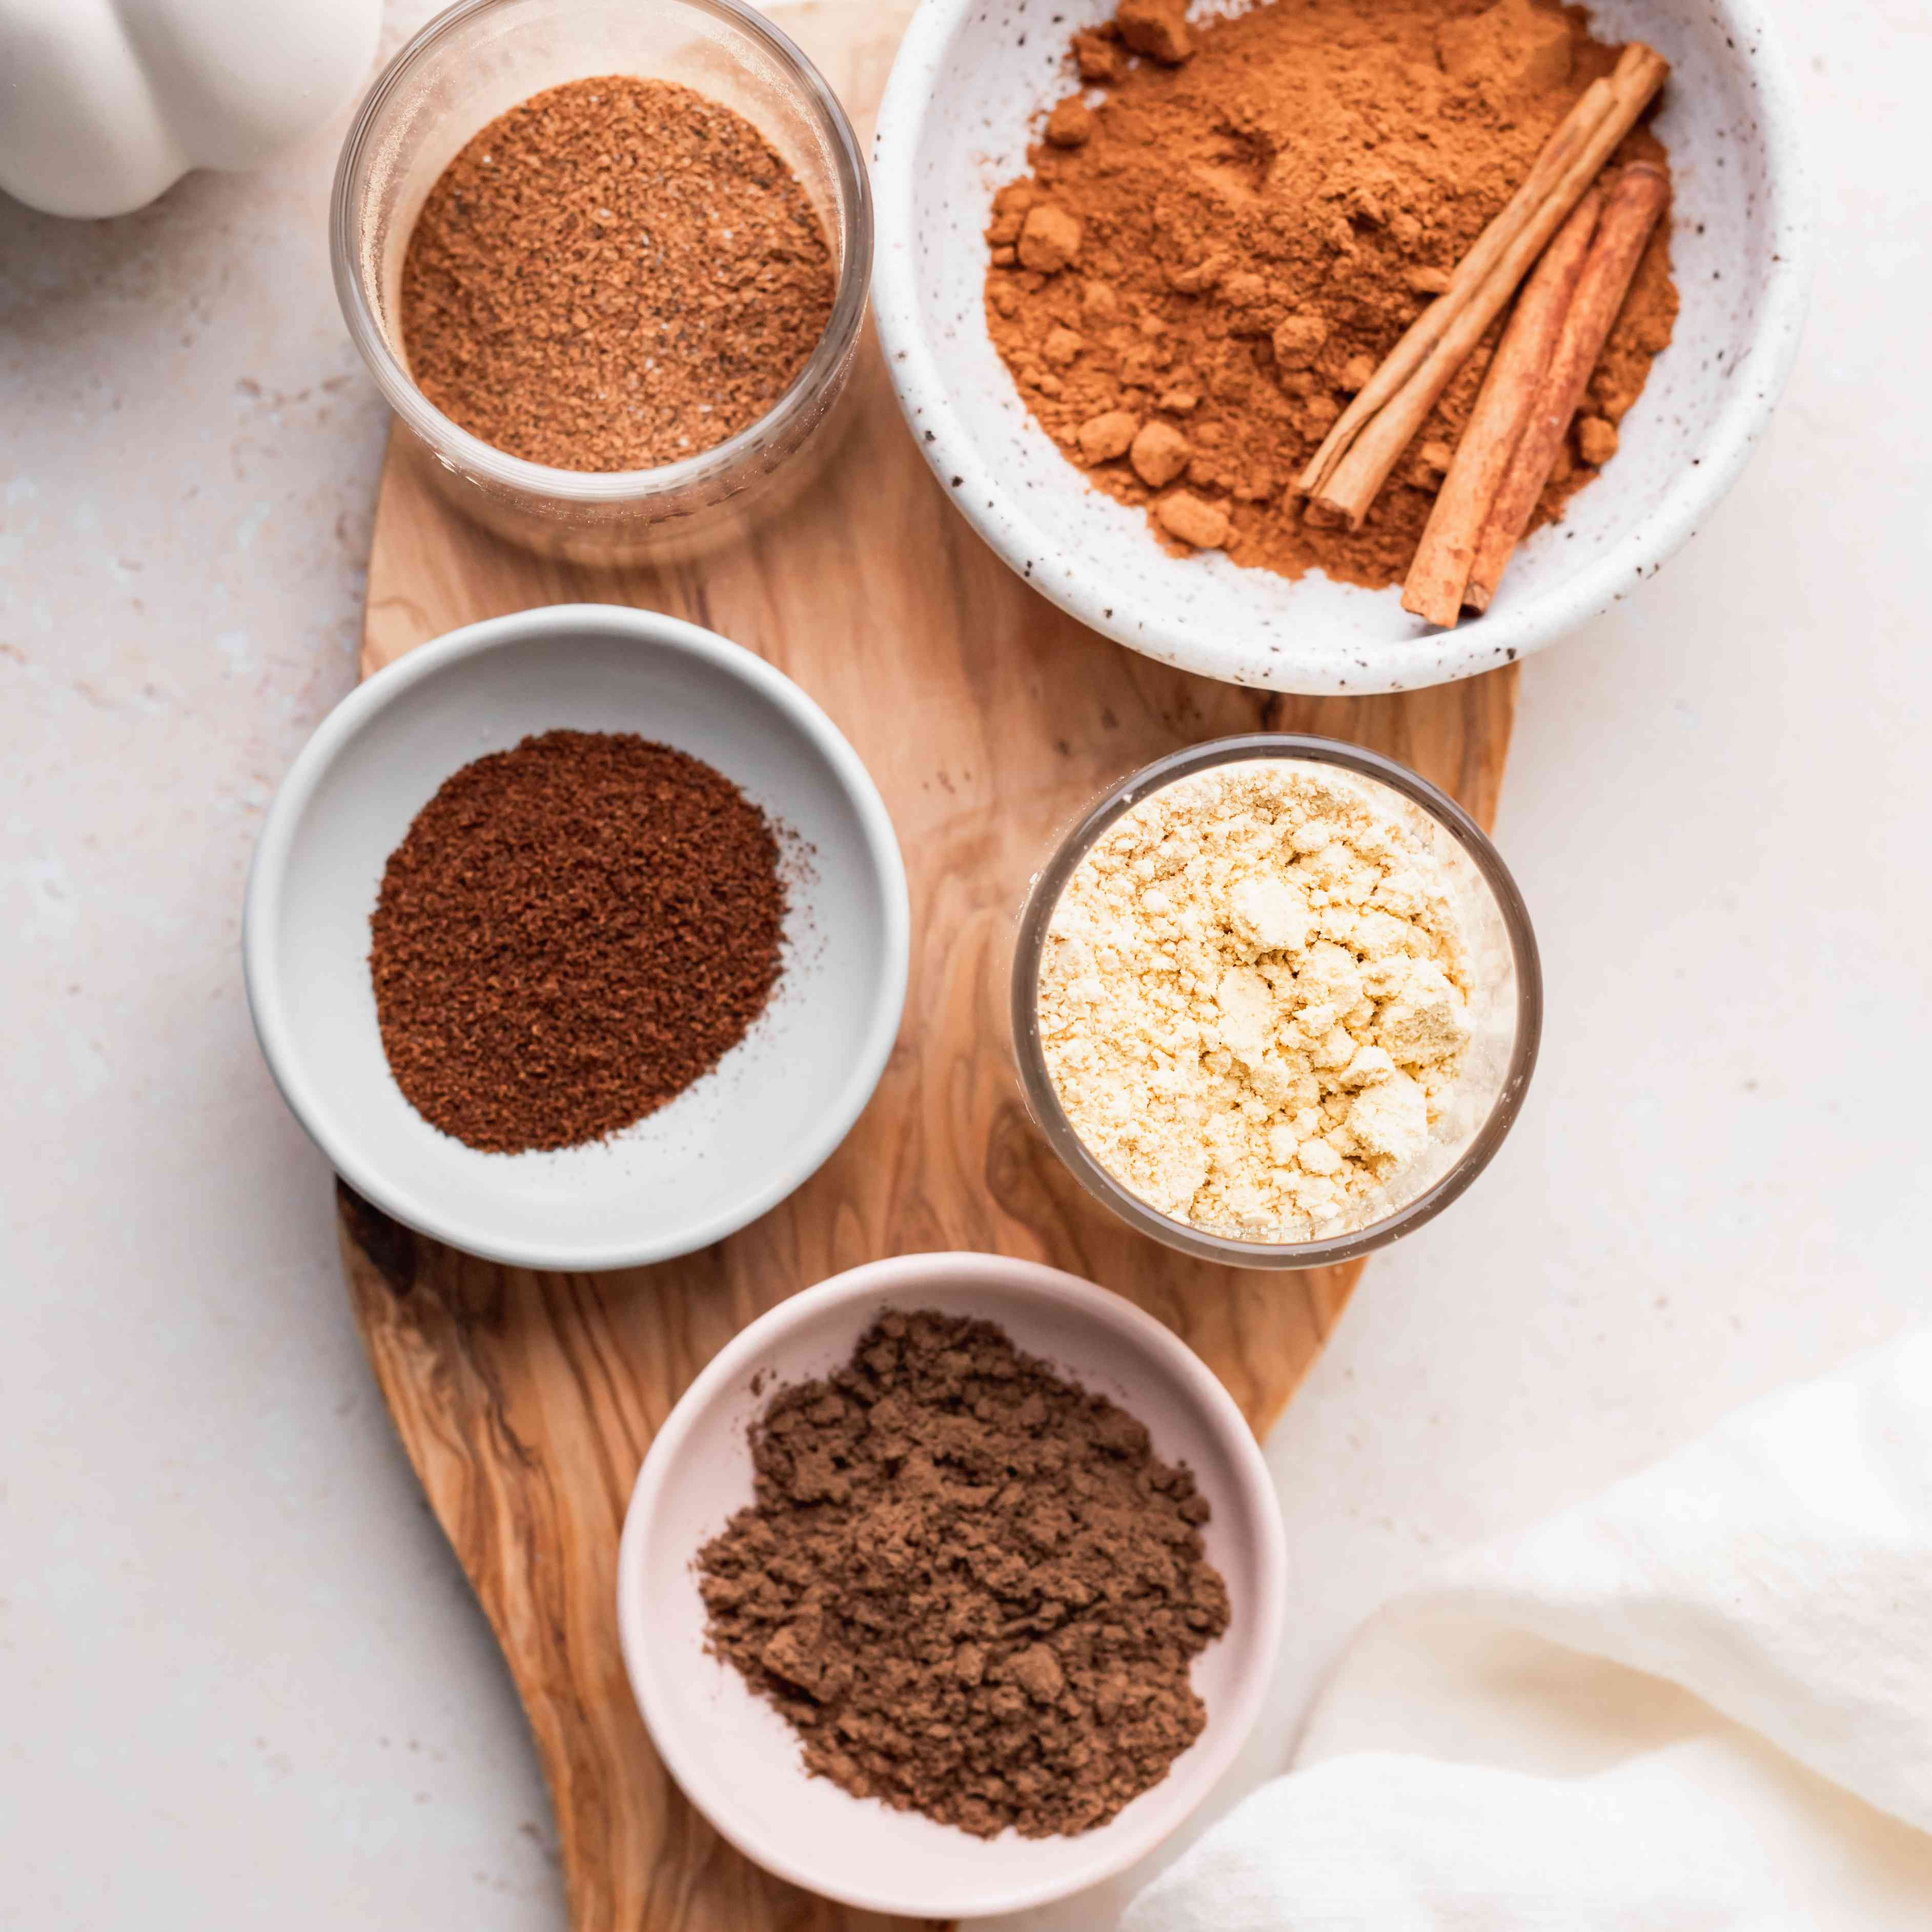 Overhead view of small bowls of individual spices set on a wooden cutting board to show how to make pumpkin pie spice.